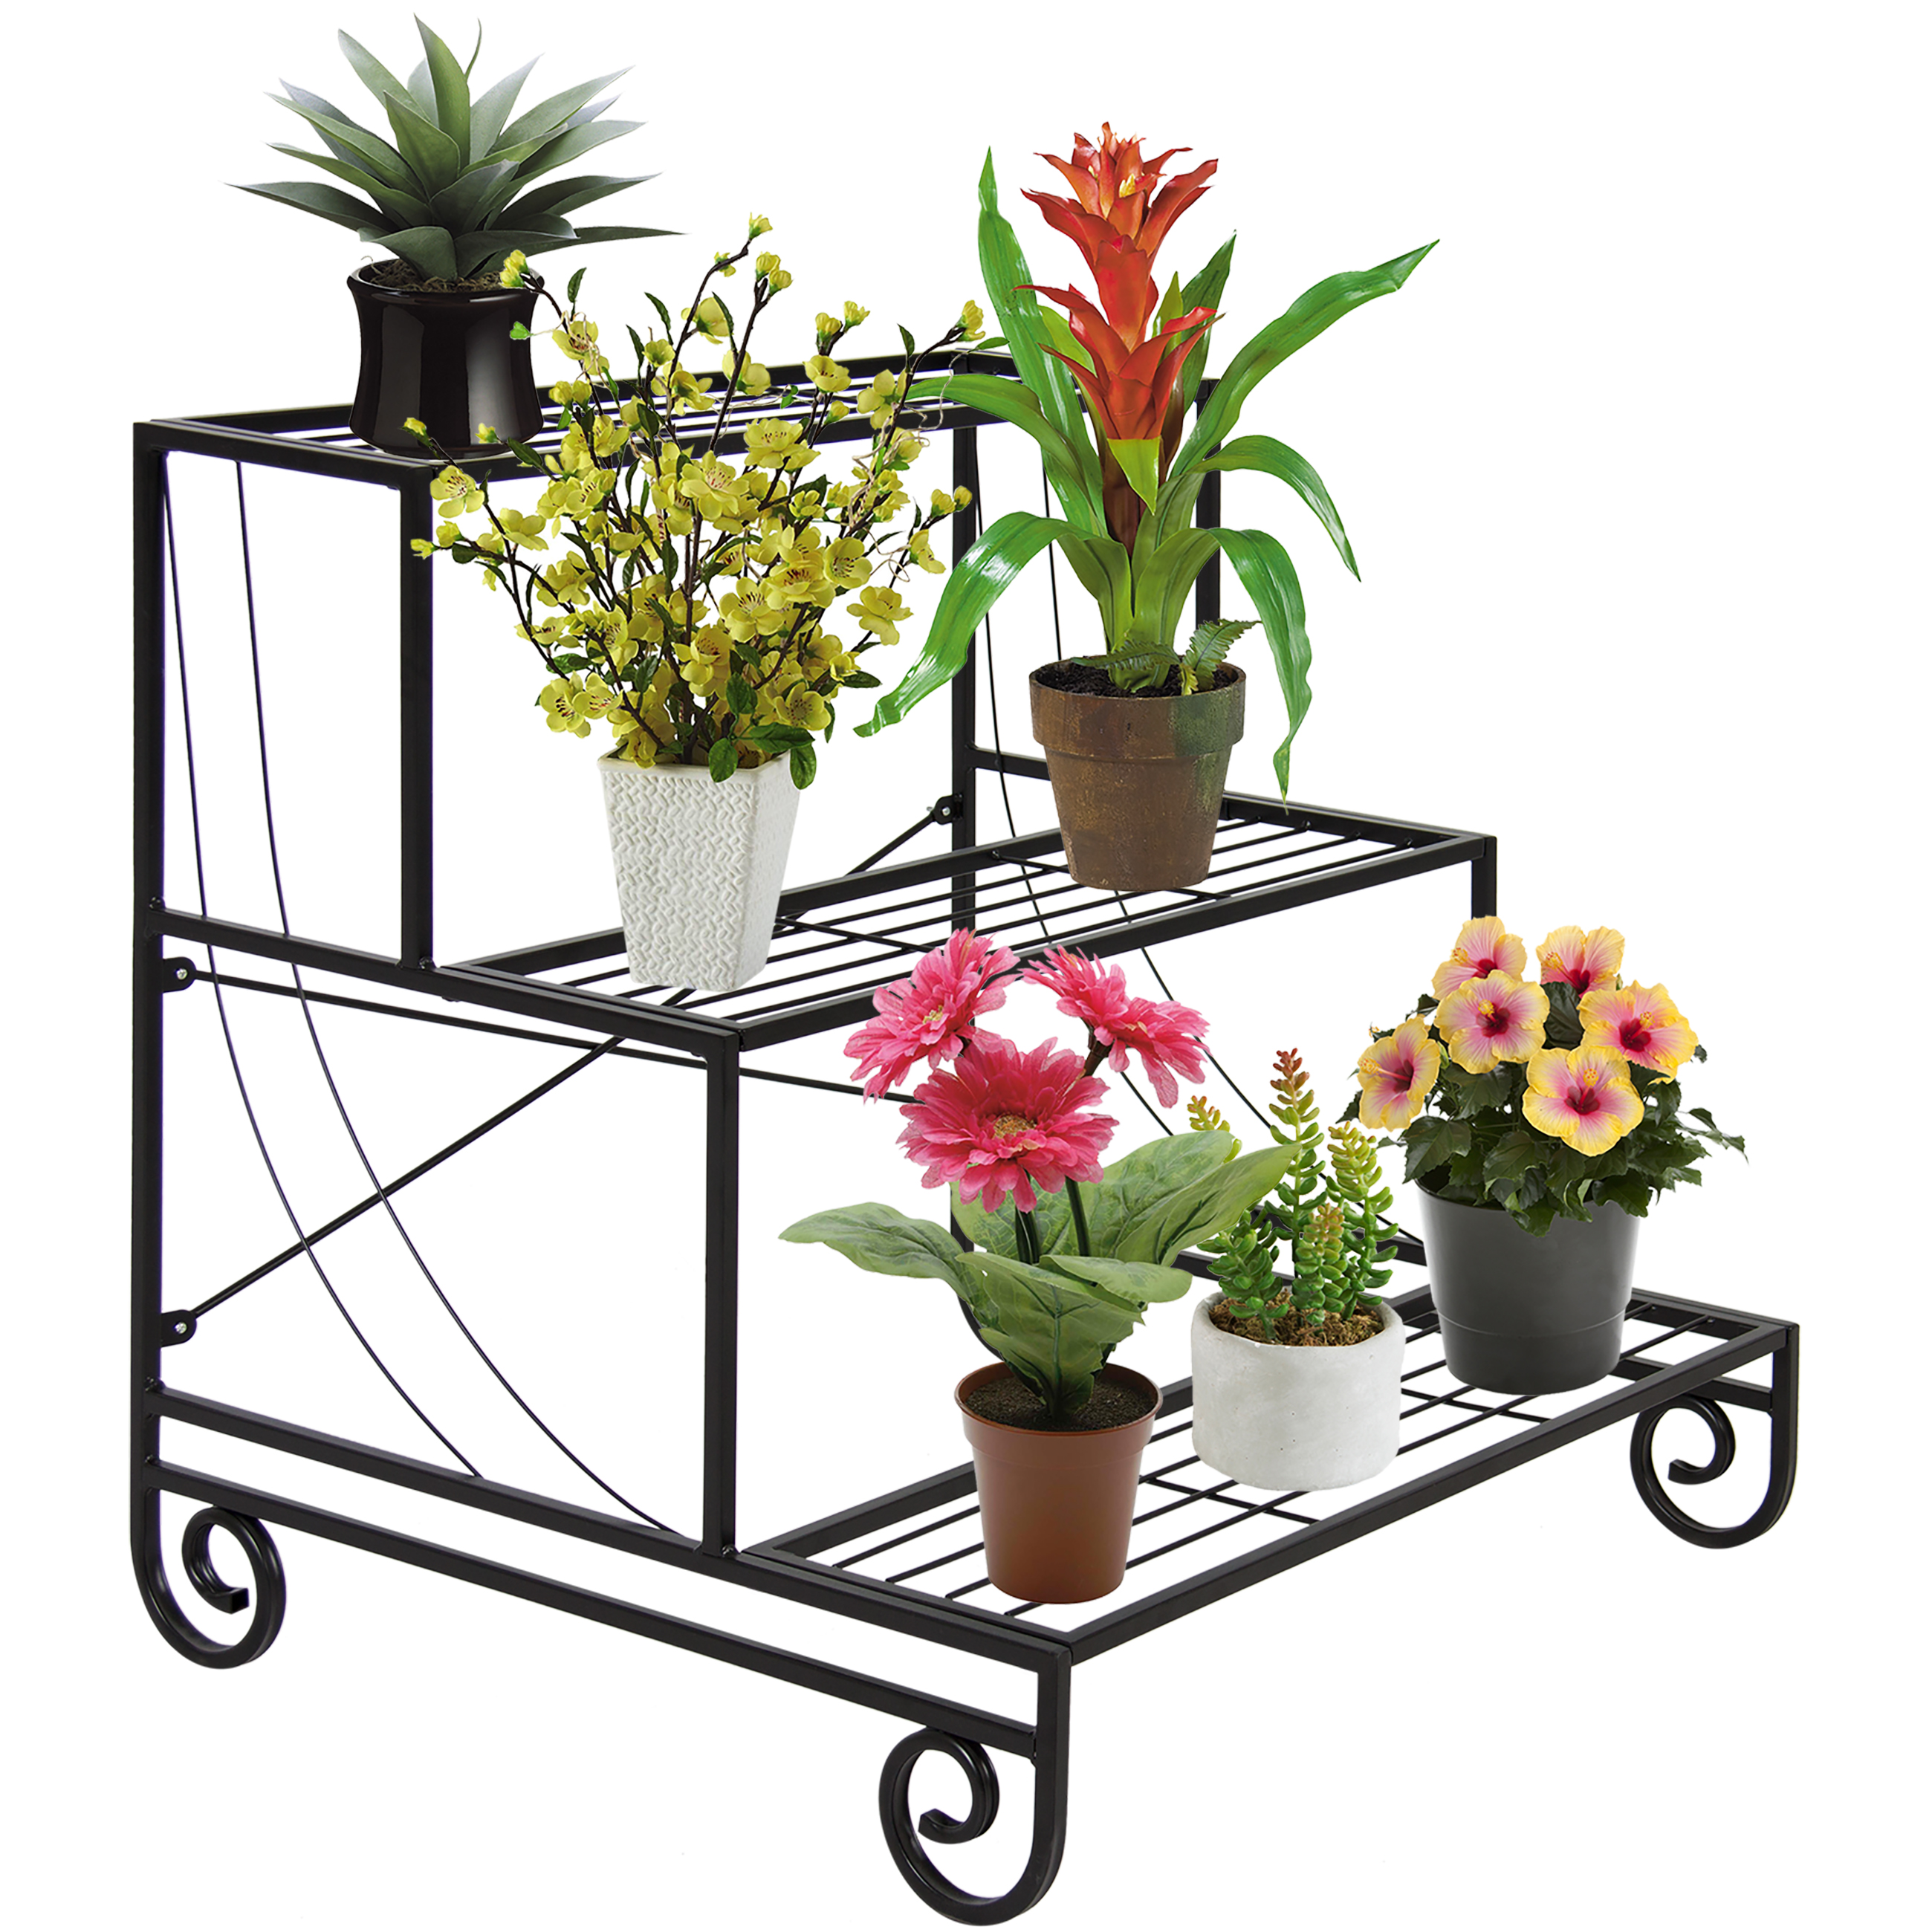 Best Choice Products 3 Tier Metal Plant Stand Decorative Planter Holder Flower Pot Shelf... by Best Choice Products